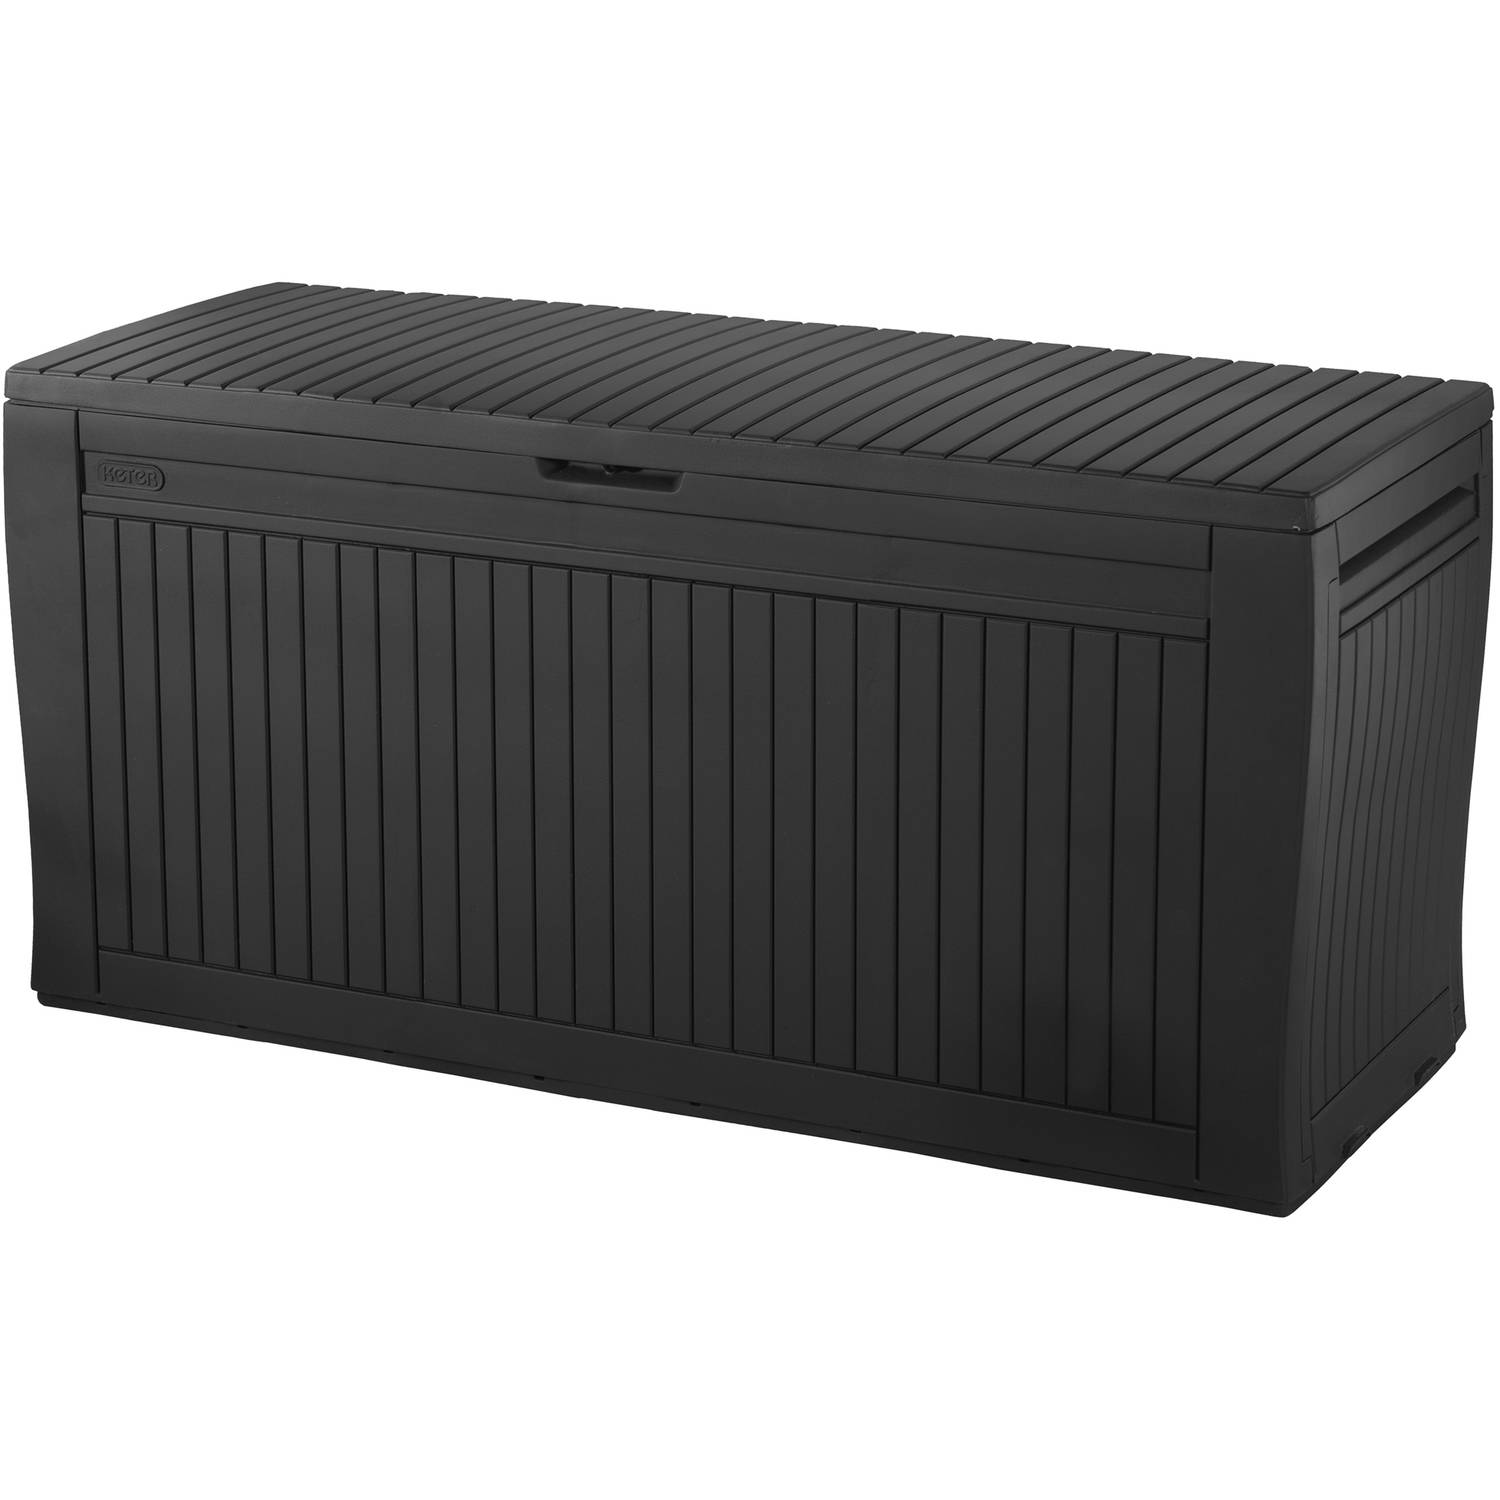 Keter Comfy 71-Gal Outdoor Storage Deck Box Espresso Brown  sc 1 st  Walmart & Pool Storage Boxes